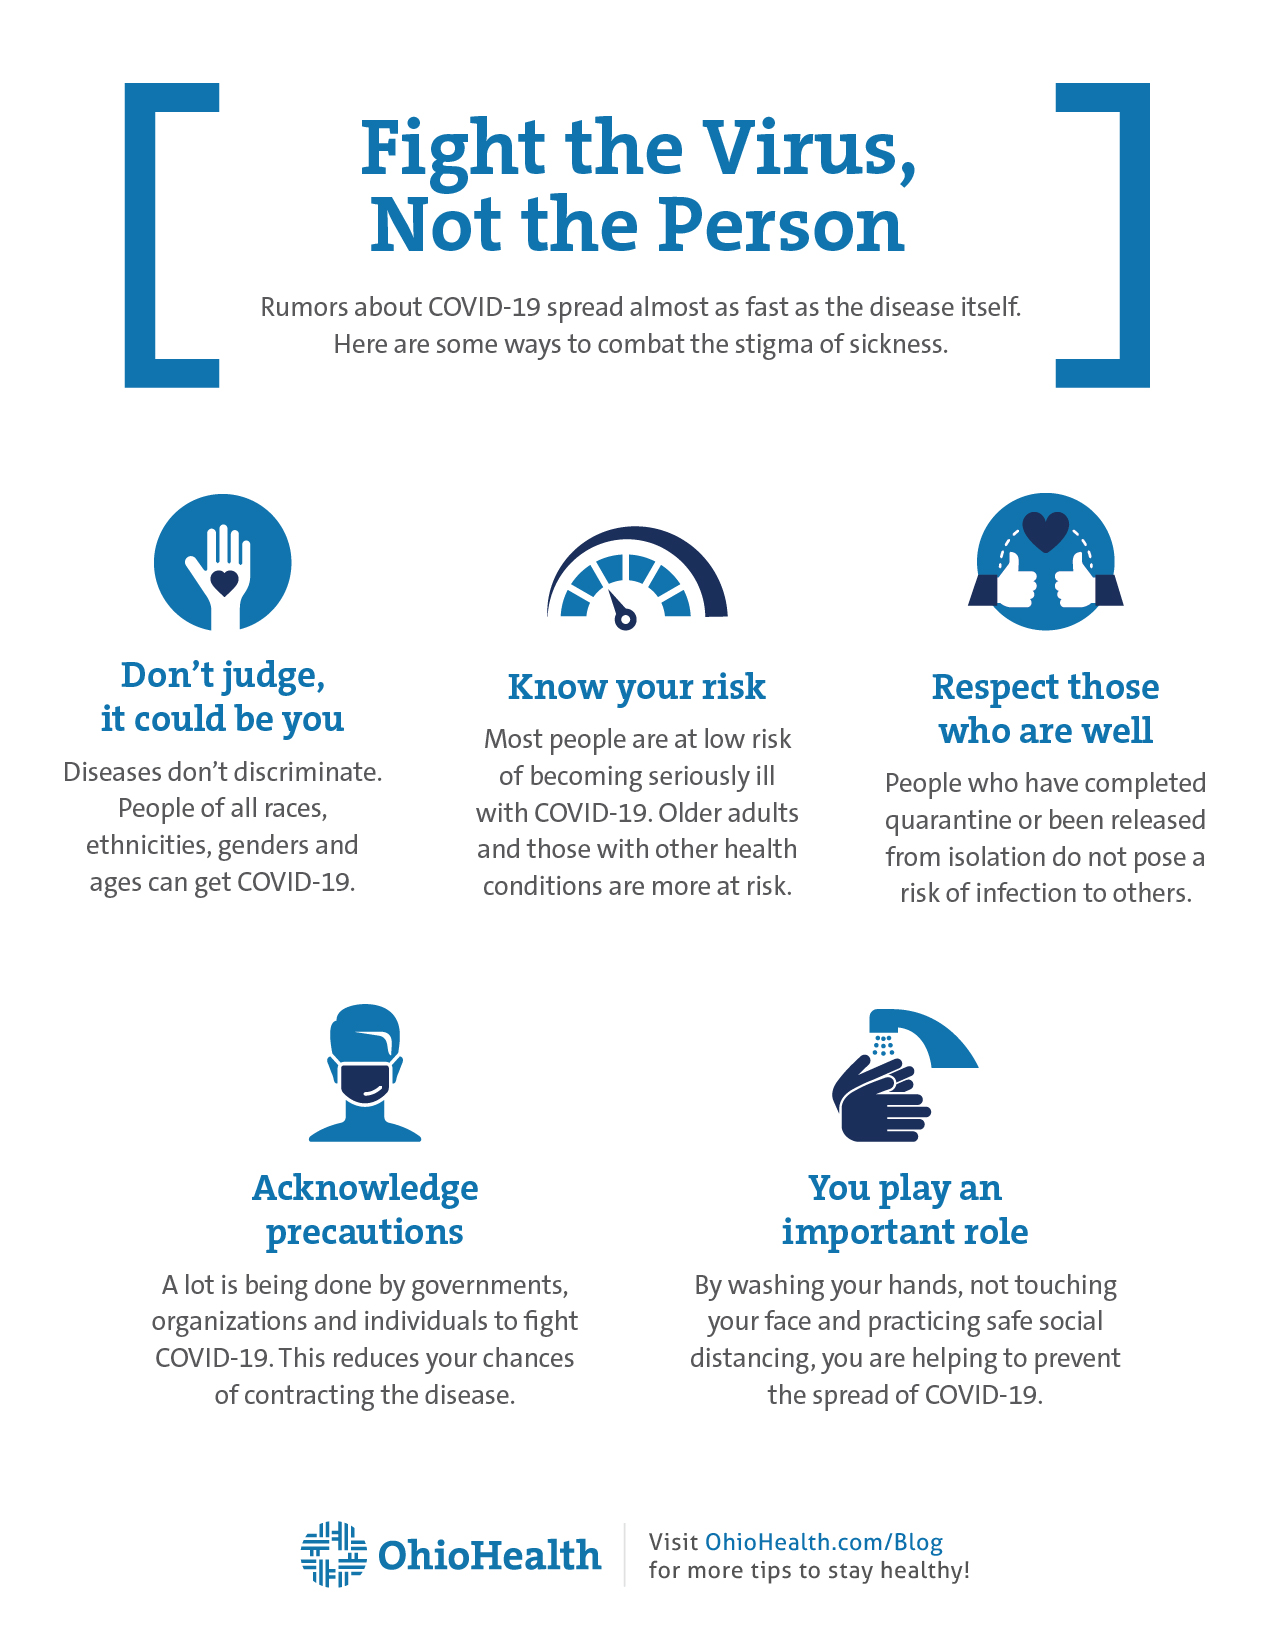 Infographic with tips of combatting the stigma of sickness during COVID-19 pandemic